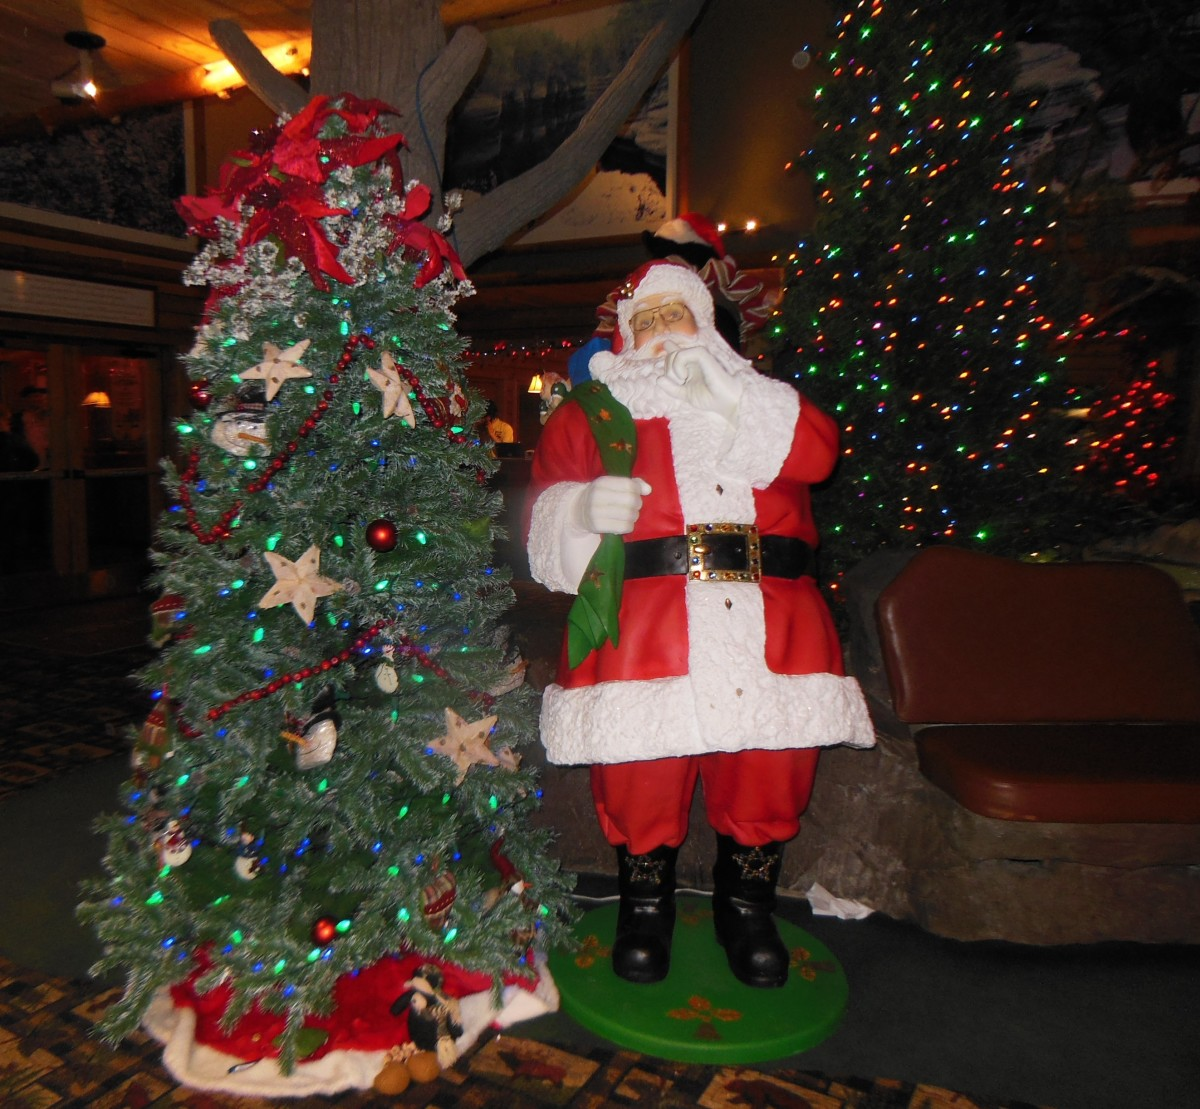 Visiting the Wilderness Resort In Wisconsin Dells During the Winter Months